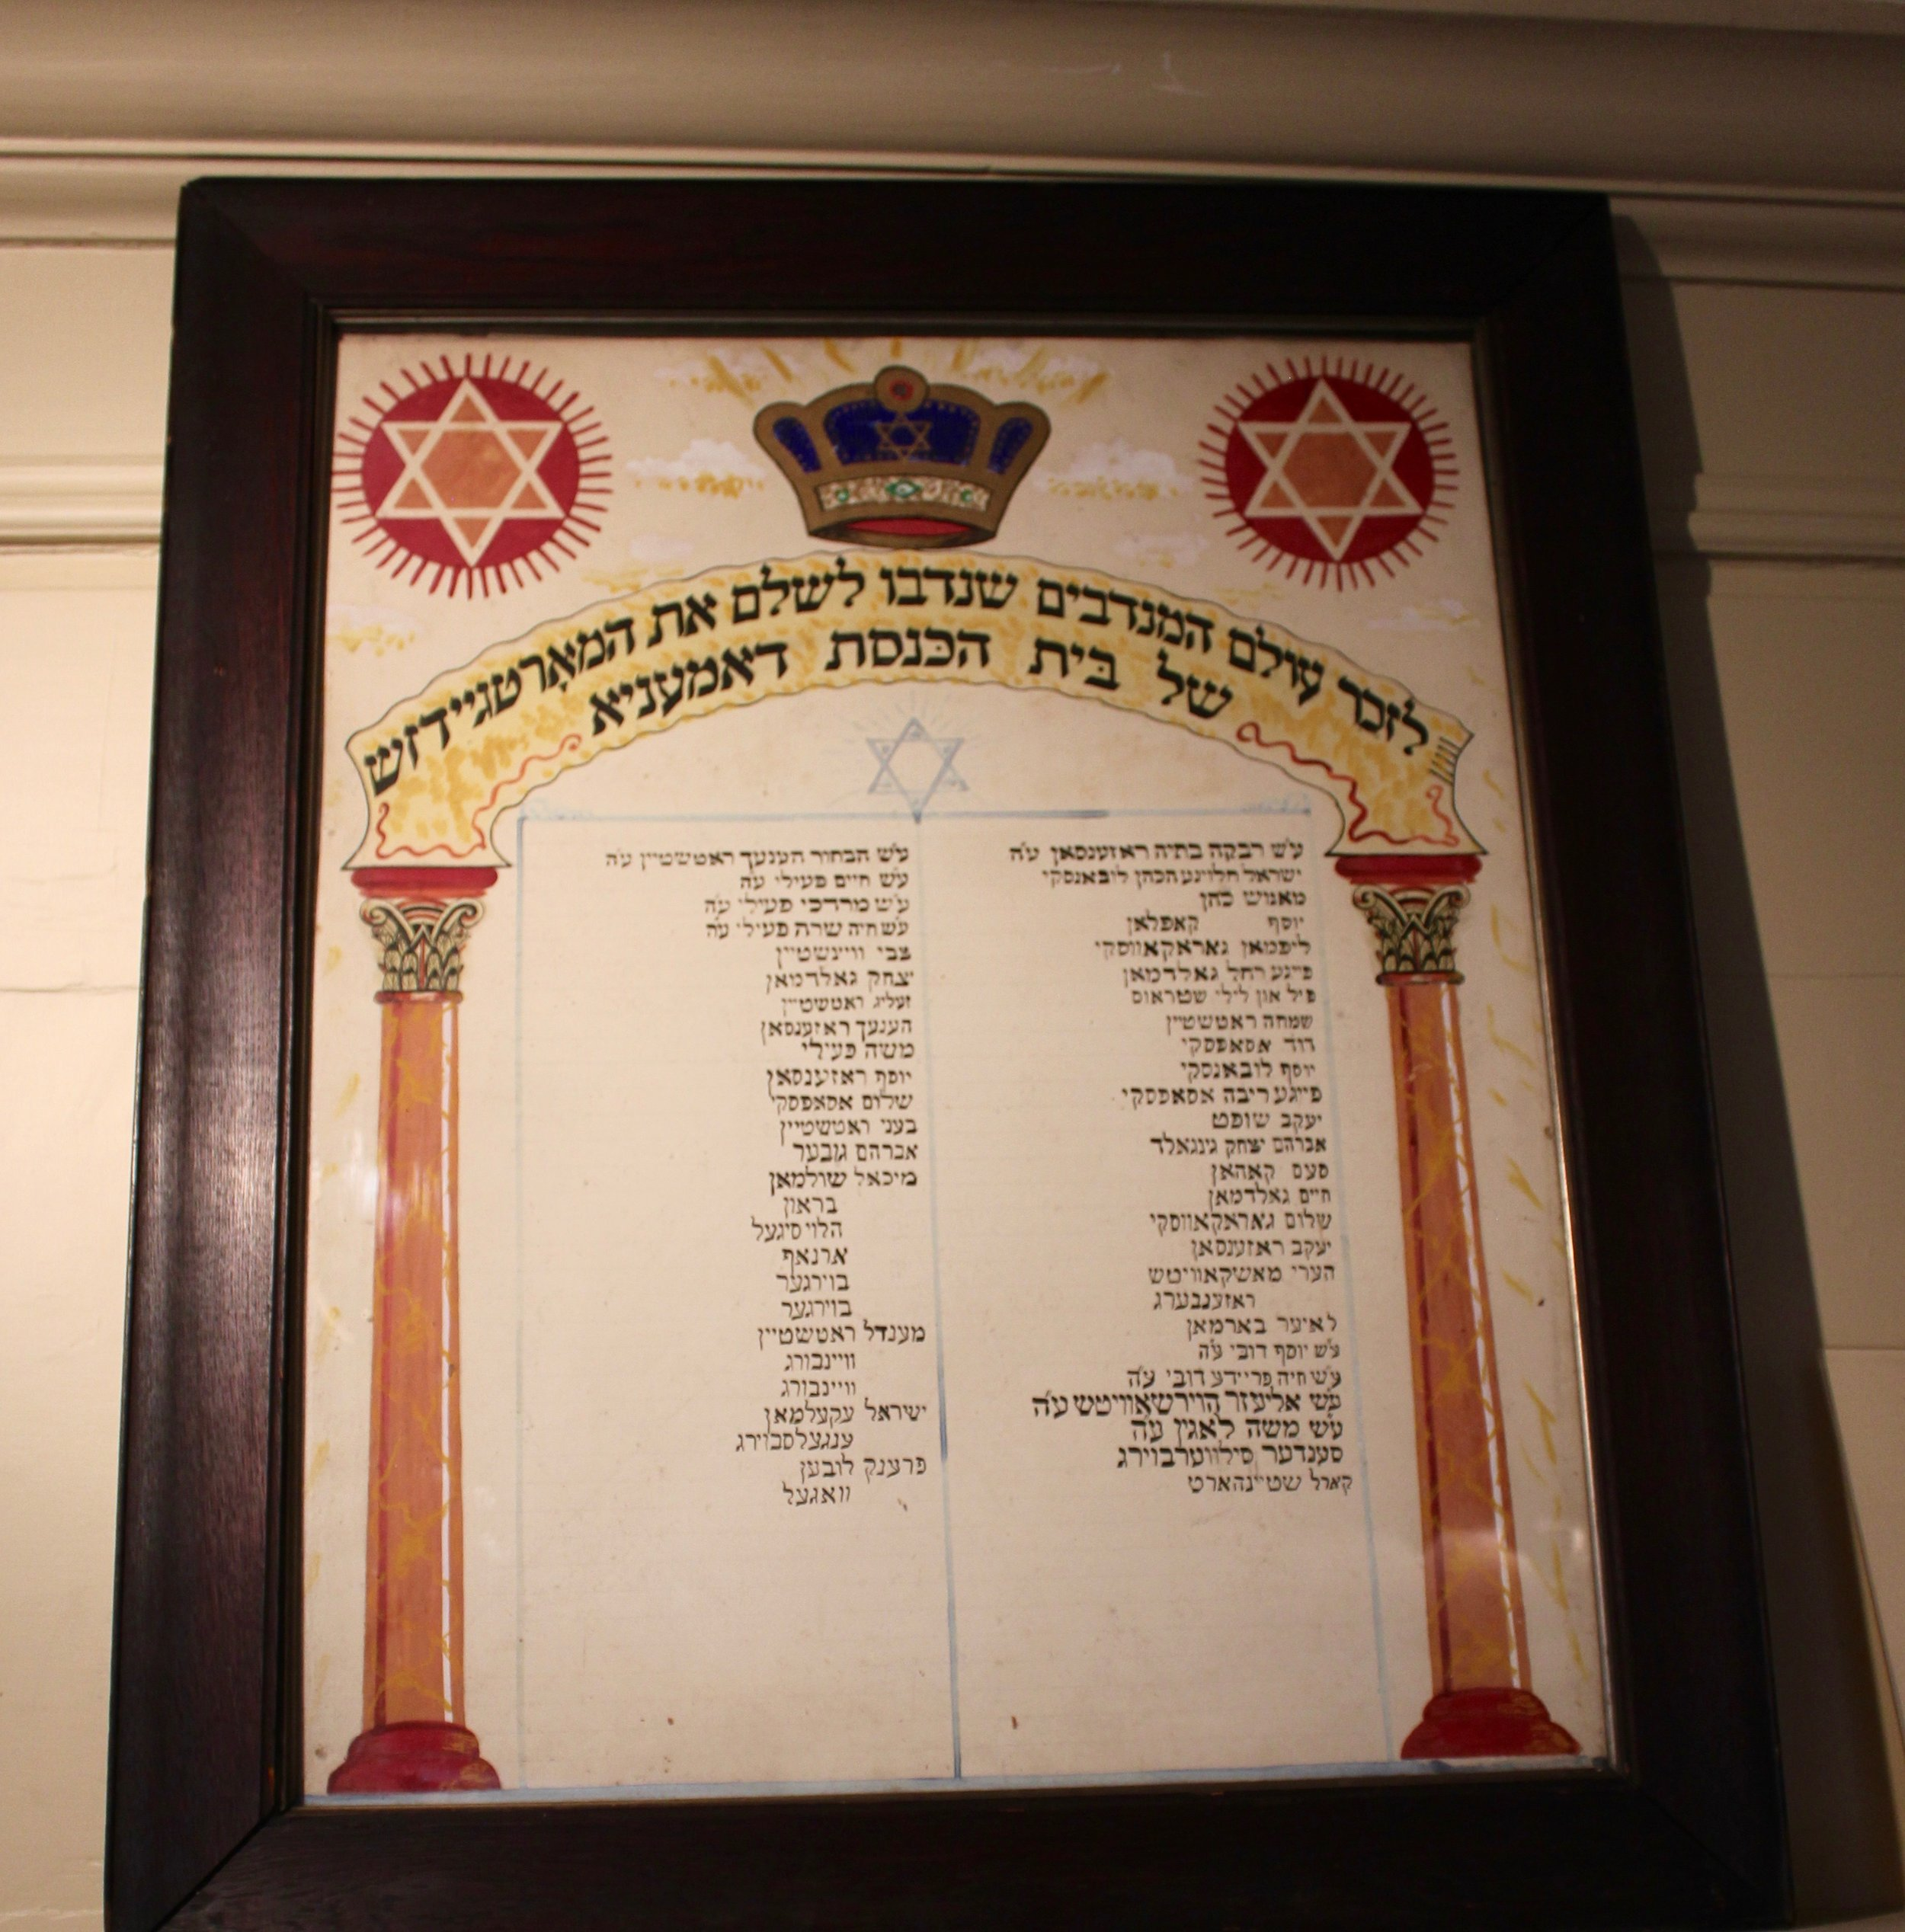 Plaque in Yiddish honoring those who contributed to paying off the synagogue mortgage